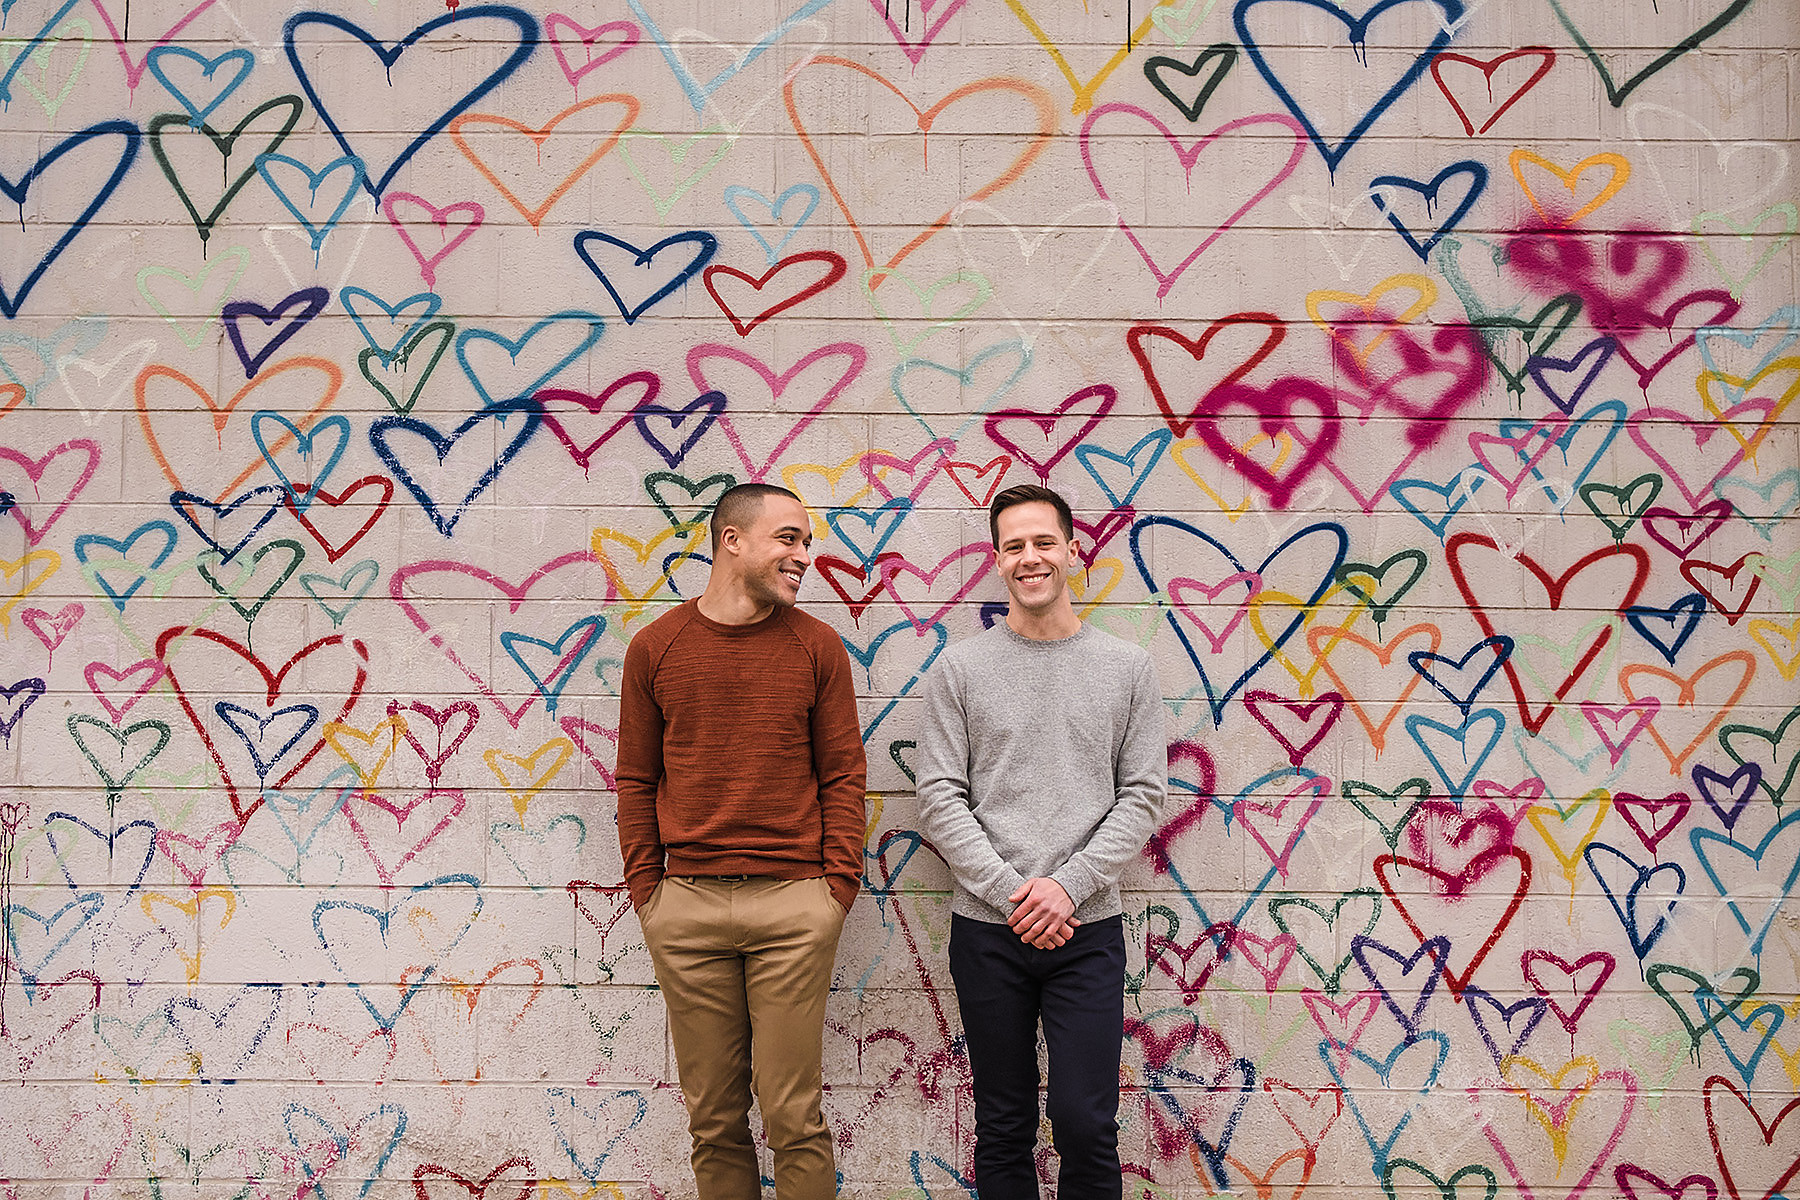 Heart Wall Engagement Photography